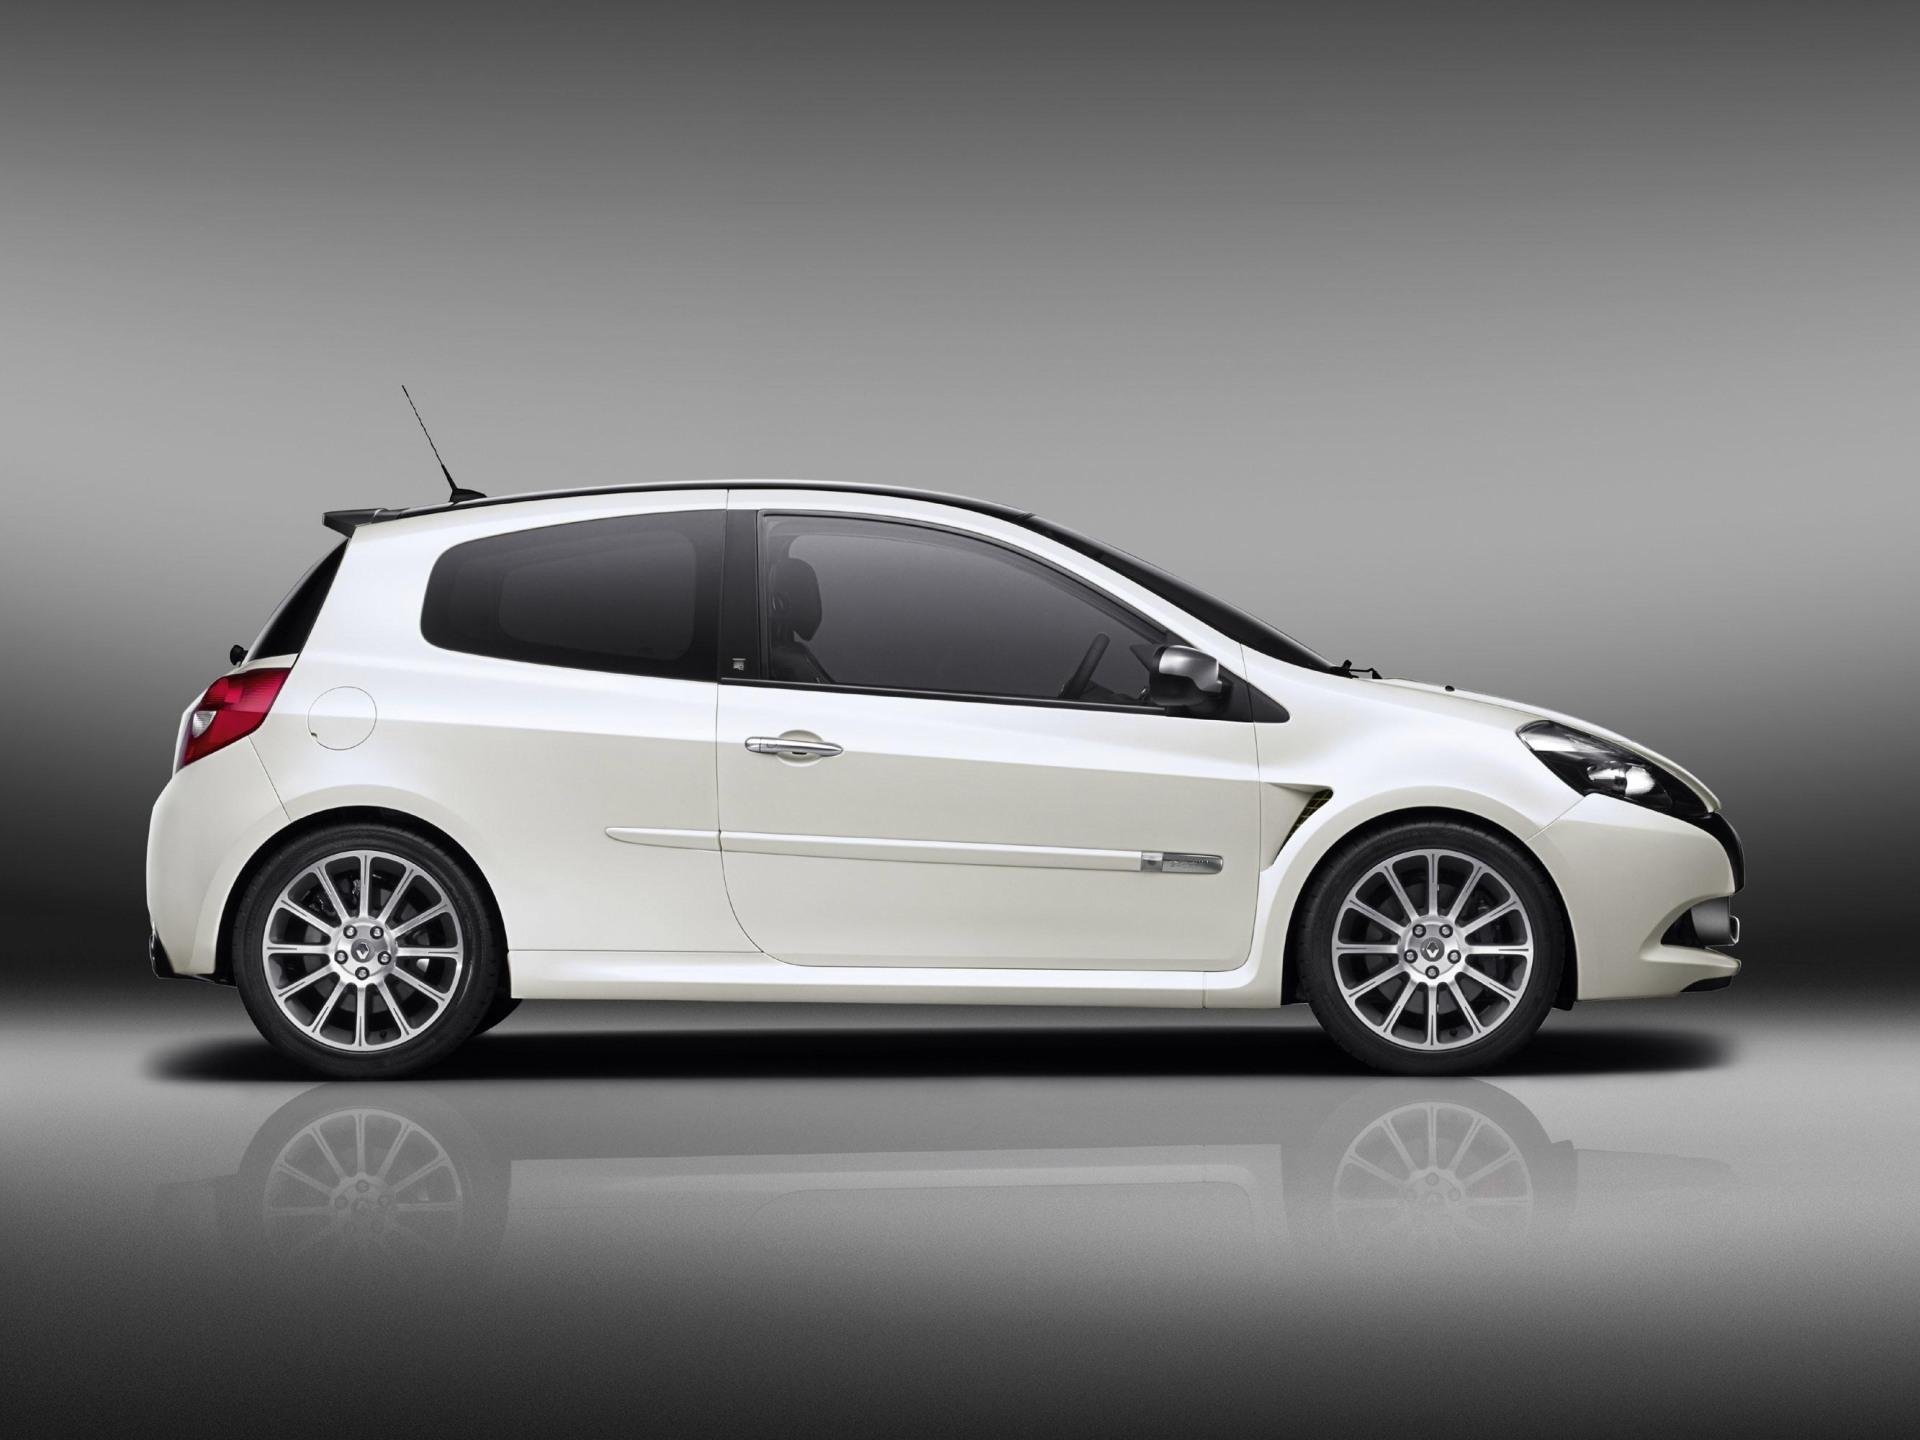 2010 Renault Clio 20th Anniversary Edition